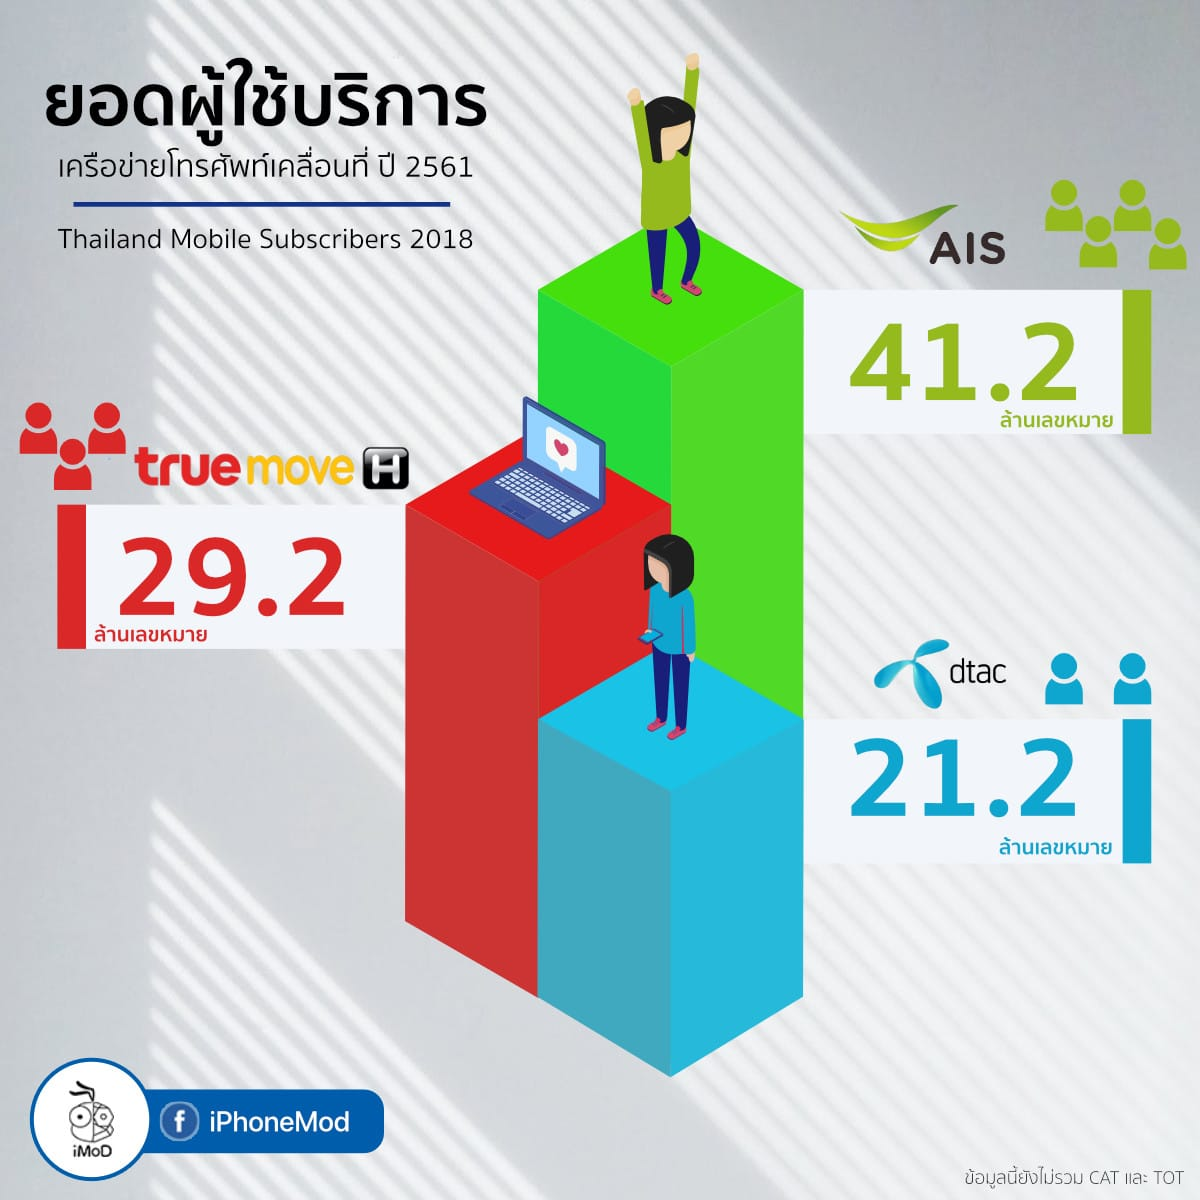 Thailand Mobile Subscribers 2018 Small Final